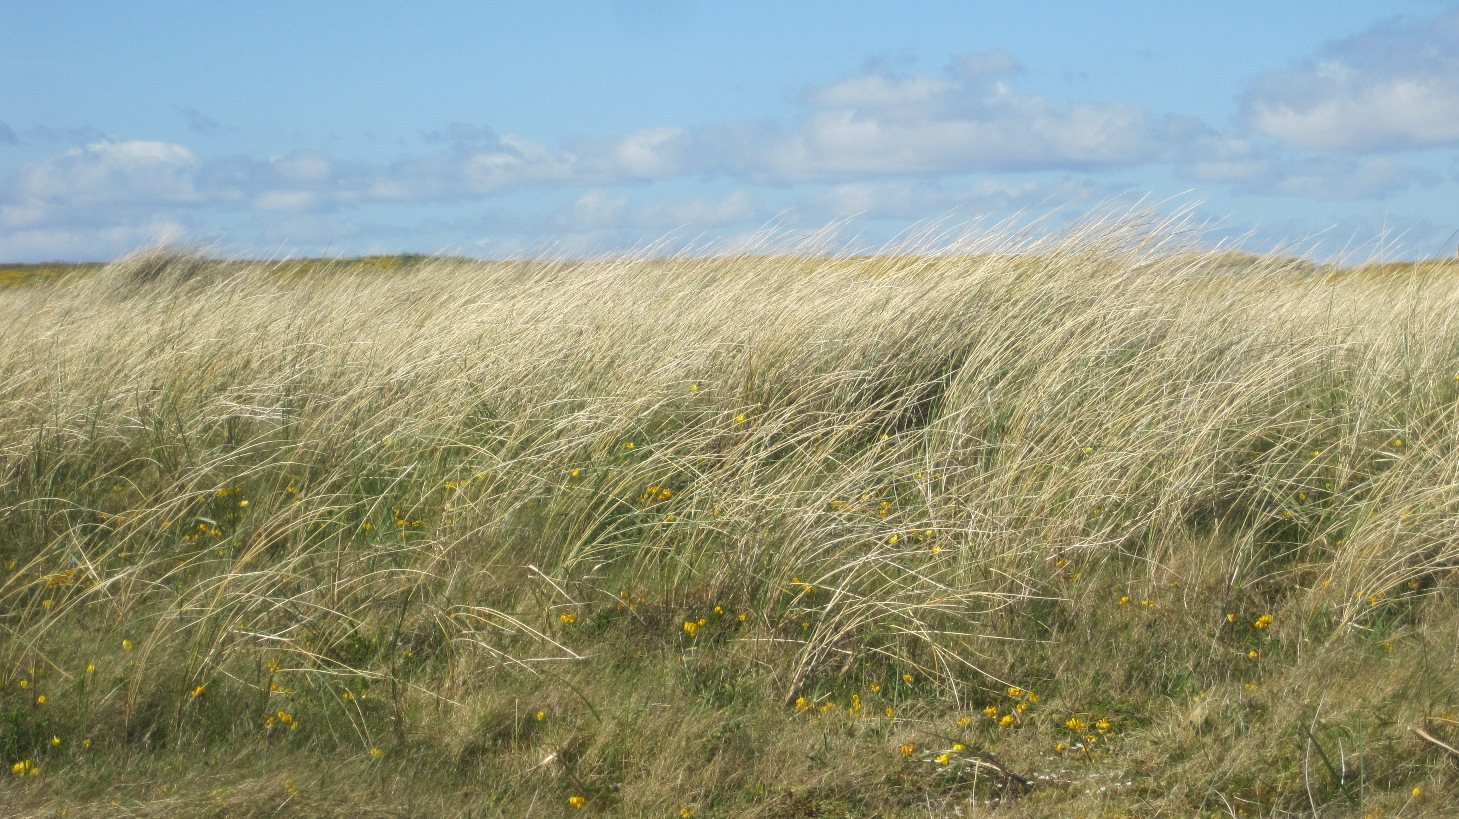 Beach and beach dunes 31 May 2013 (3)